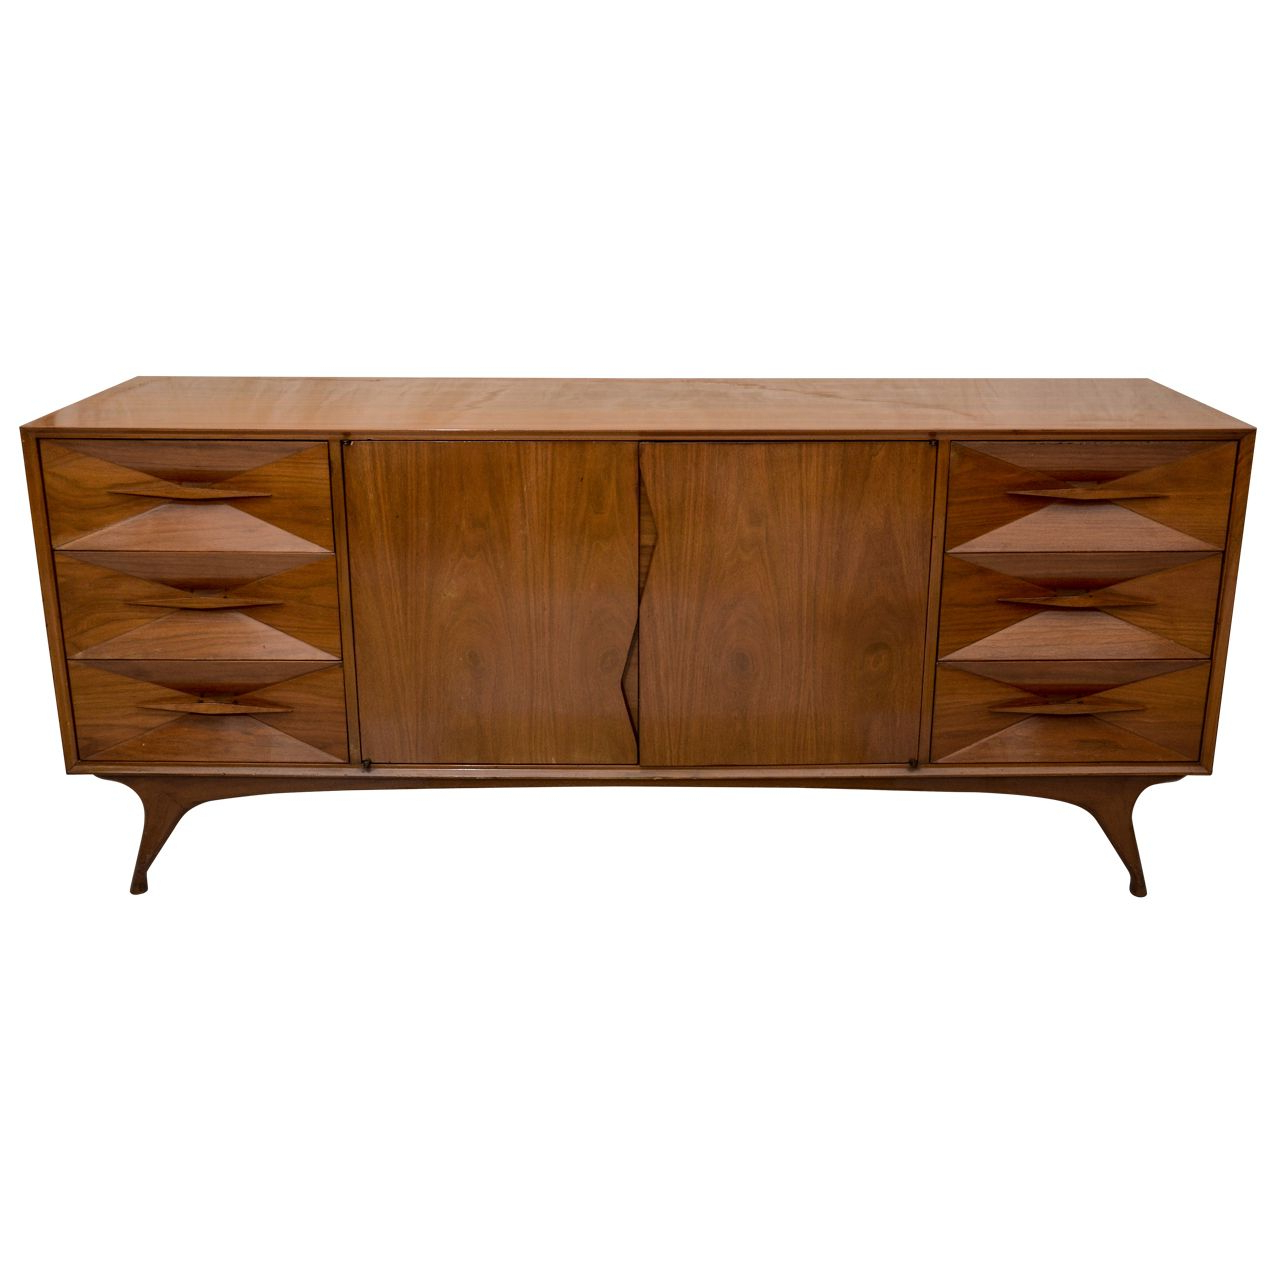 Walnut Sideboard, Mid For Solar Refinement Sideboards (View 17 of 20)